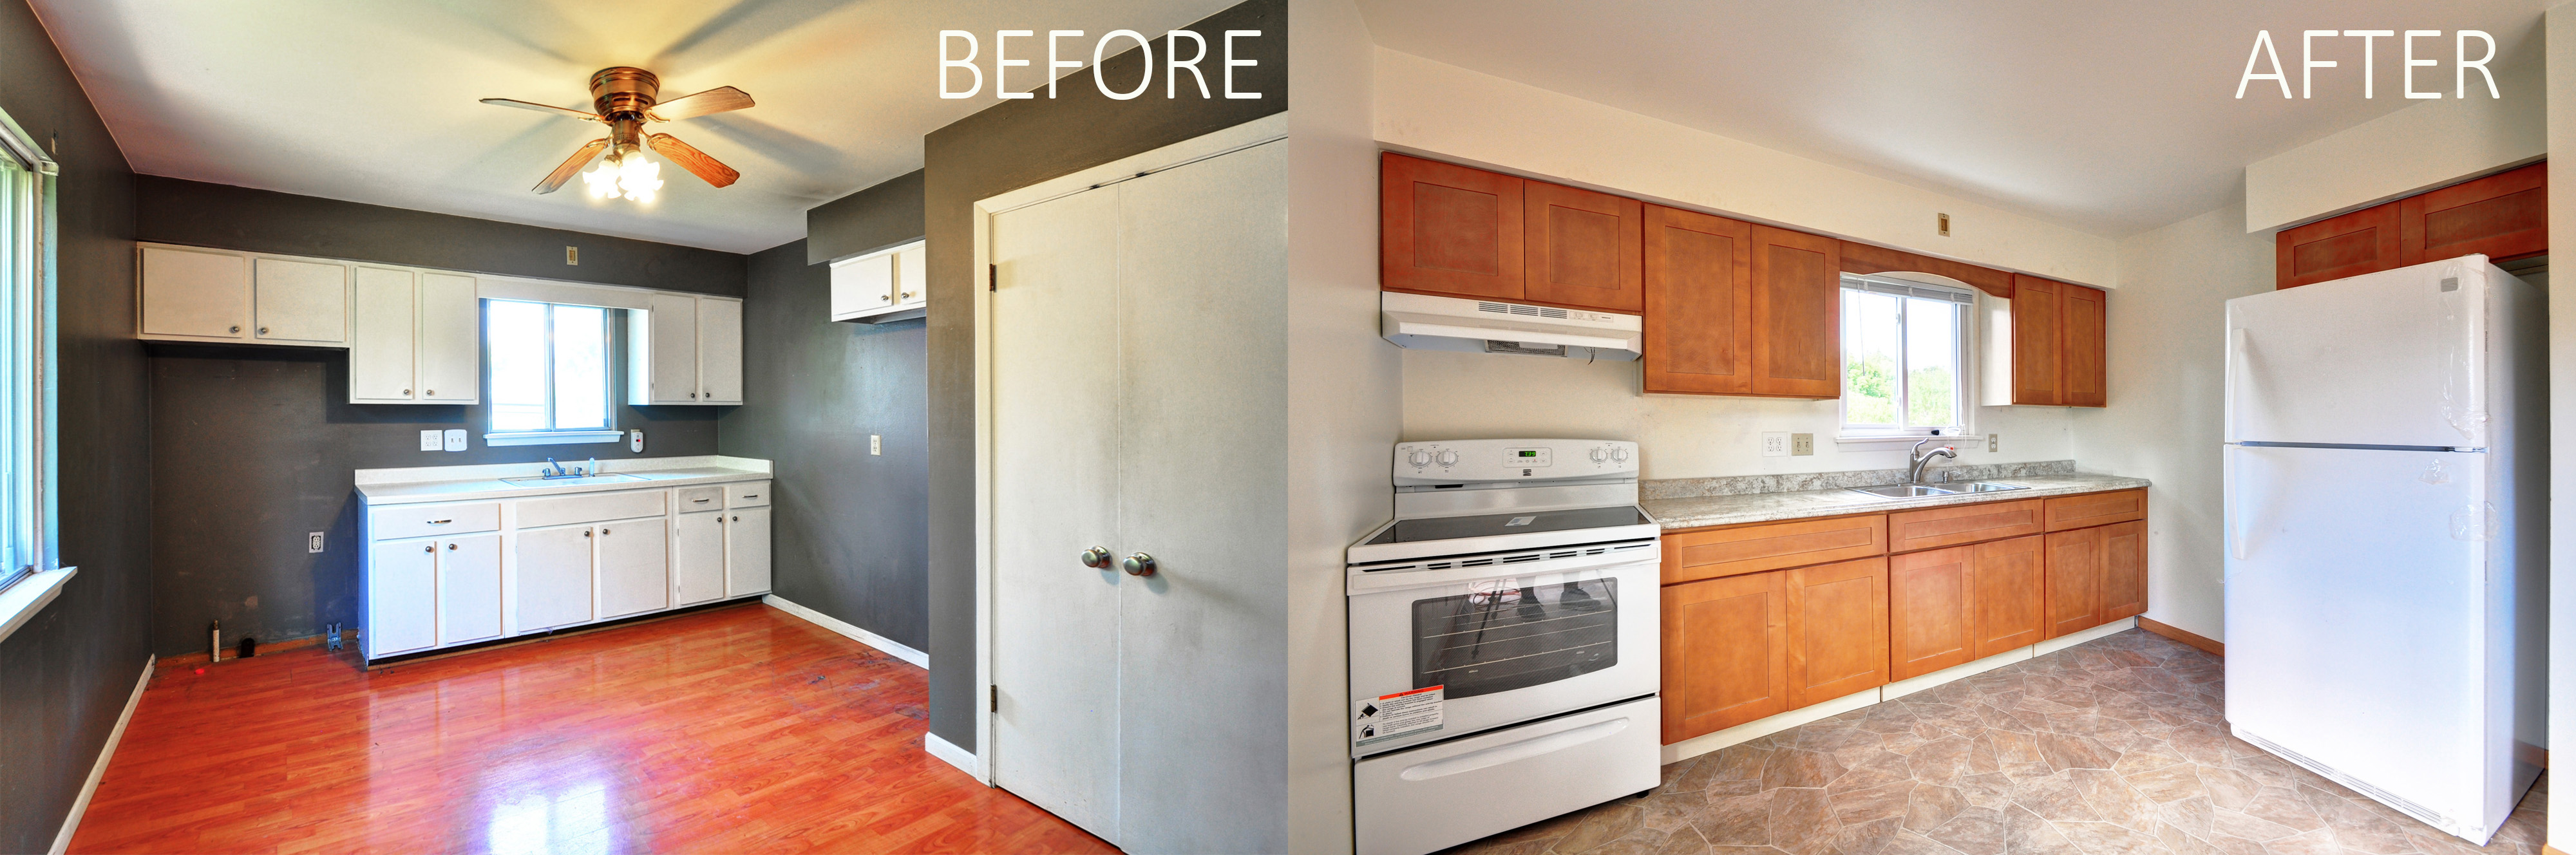 Amazing what a remodel can do for a space, huh? The style of this apartment  was out-dated, it was ready for some modernization and sprucing.